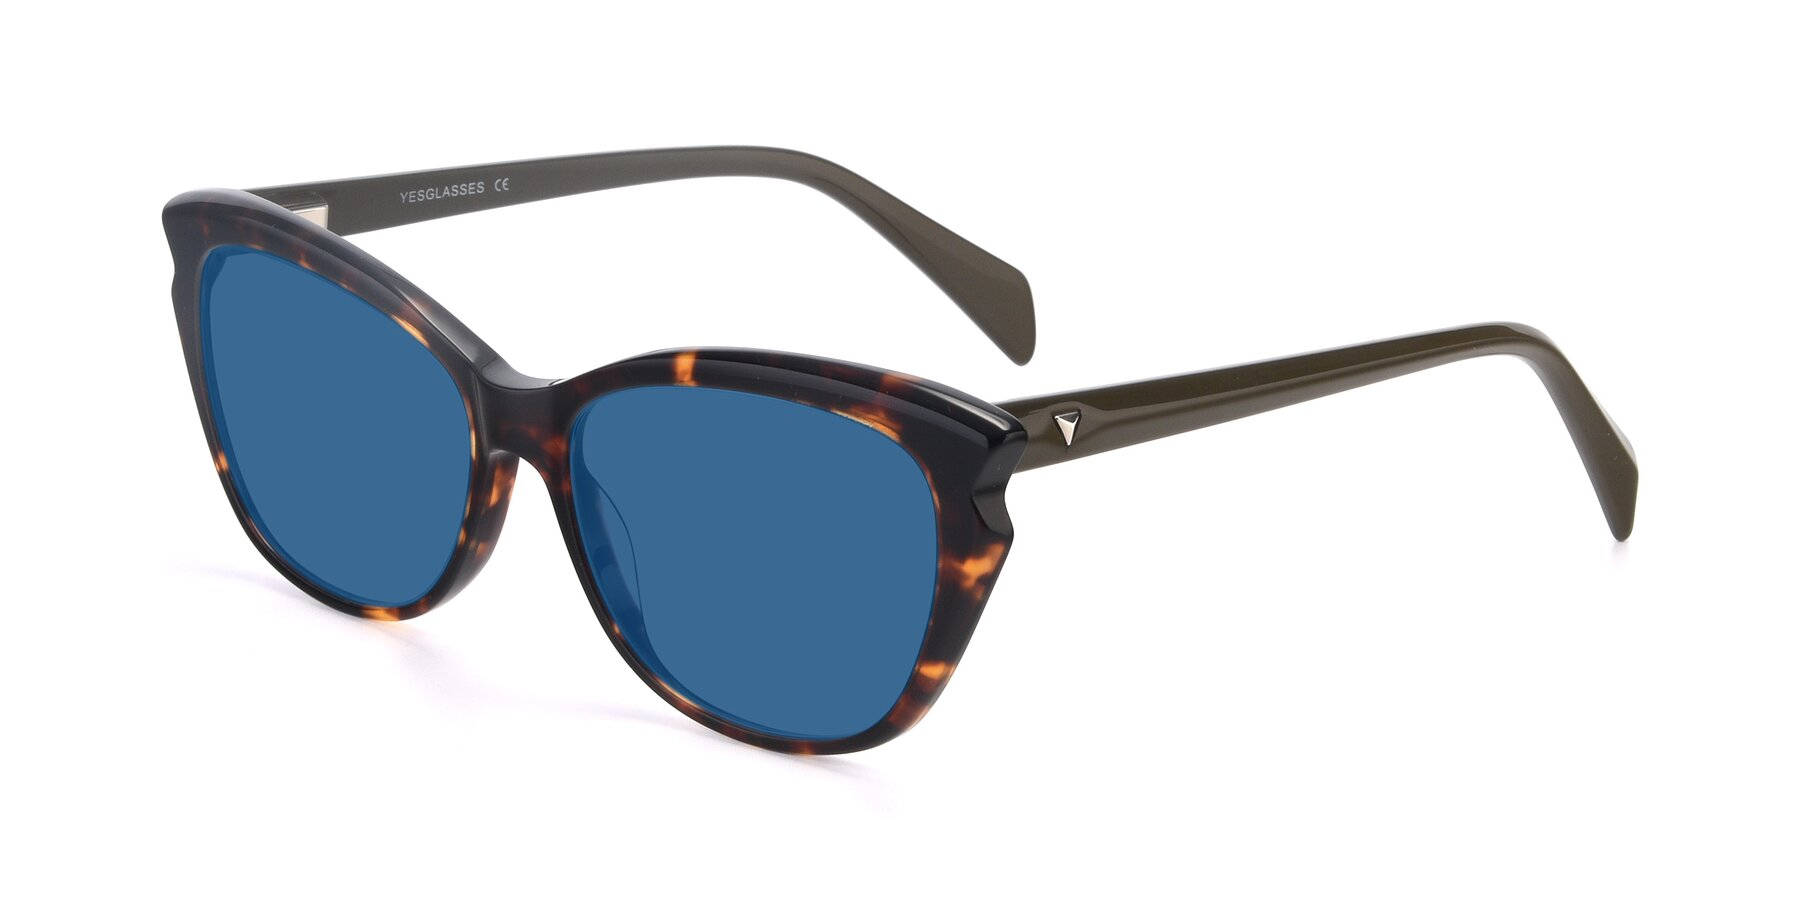 Angle of 17629 in Tortoise with Blue Tinted Lenses